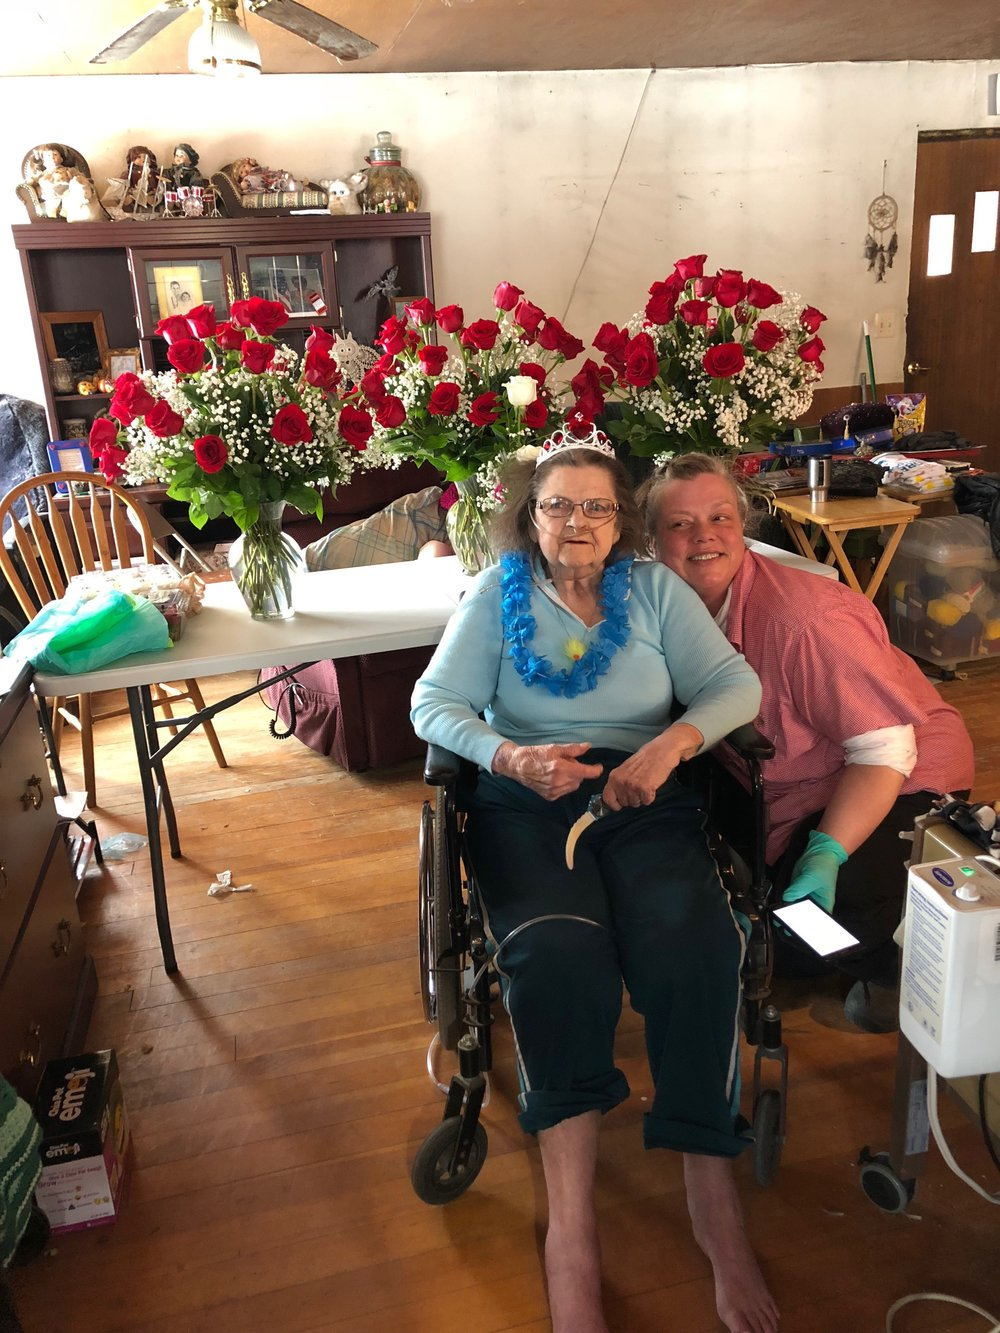 Pegge McDonald with her Hospice Home Health Aide, Jenny Klink, on Pegge's 92nd birthday, February 21. The 92 roses were sent by her son, Kelly Michael Christensen.